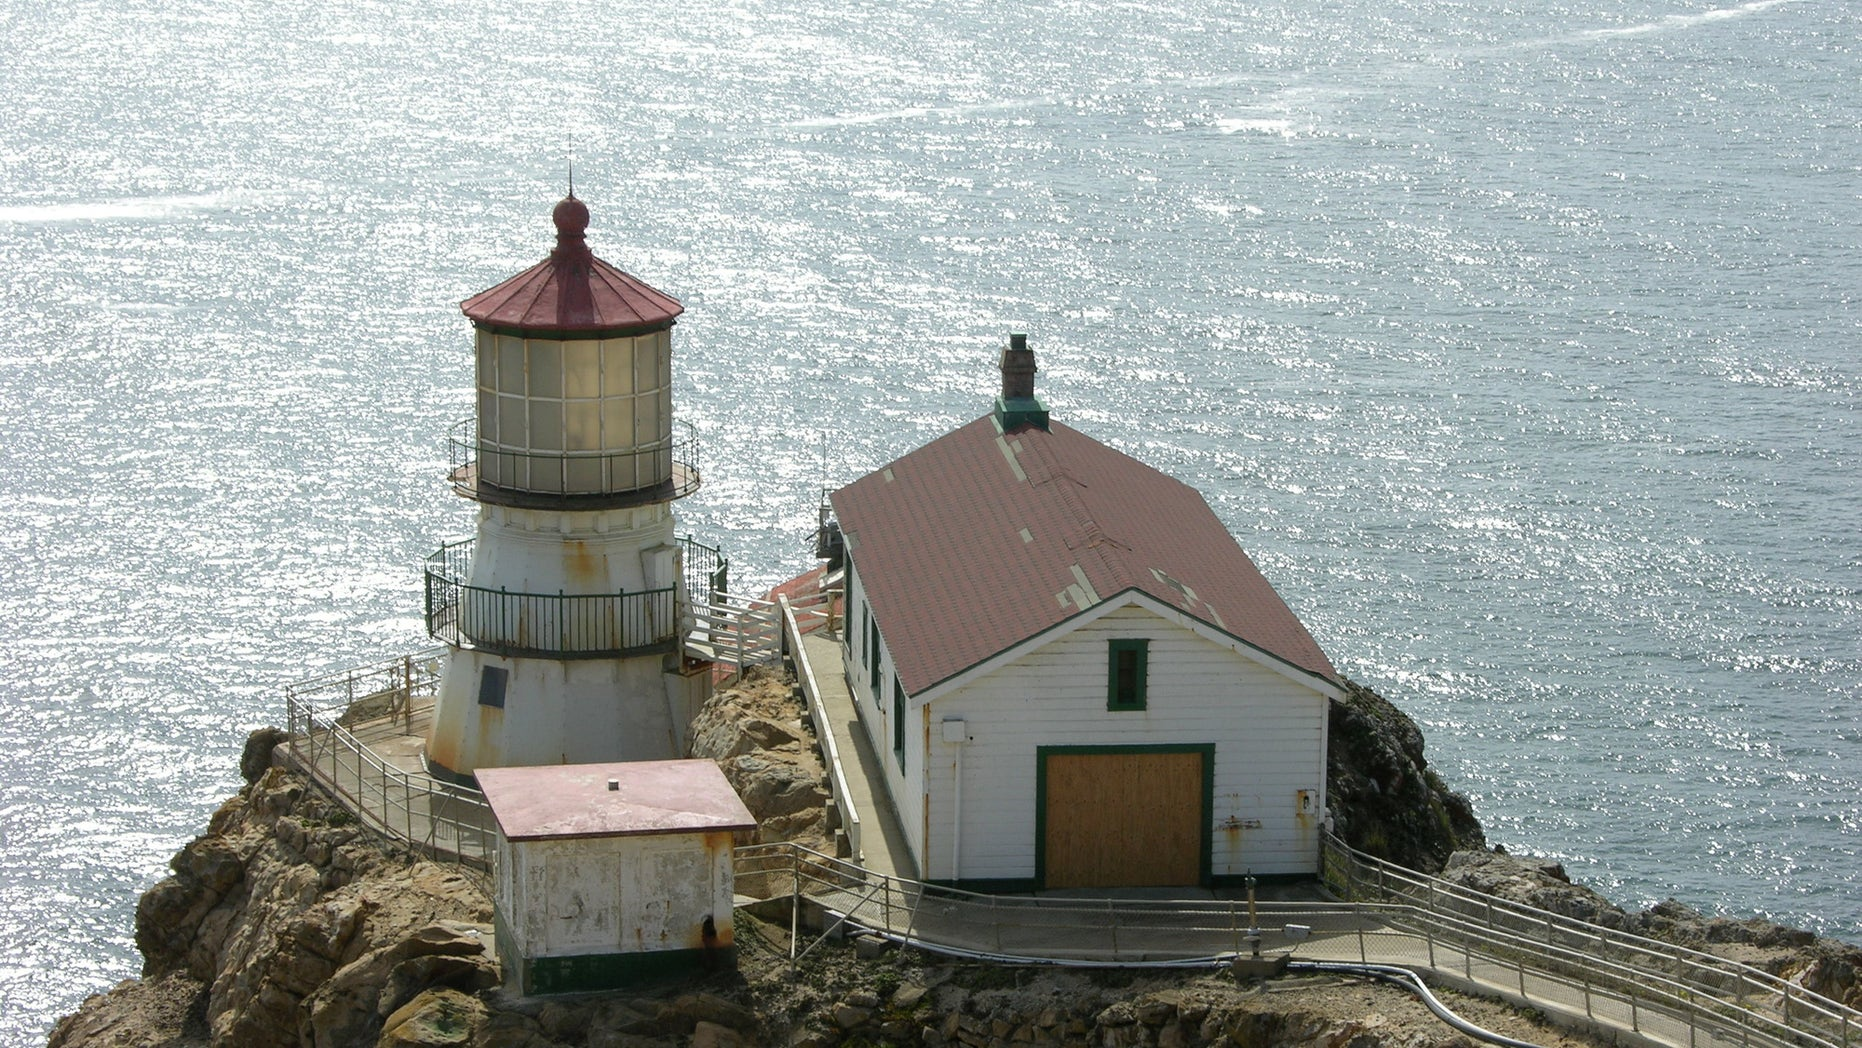 Construction workers found a time plug dark behind a wooden lumber inside a wall of the Point Reyes National Lighthouse in California in Oct 2018.